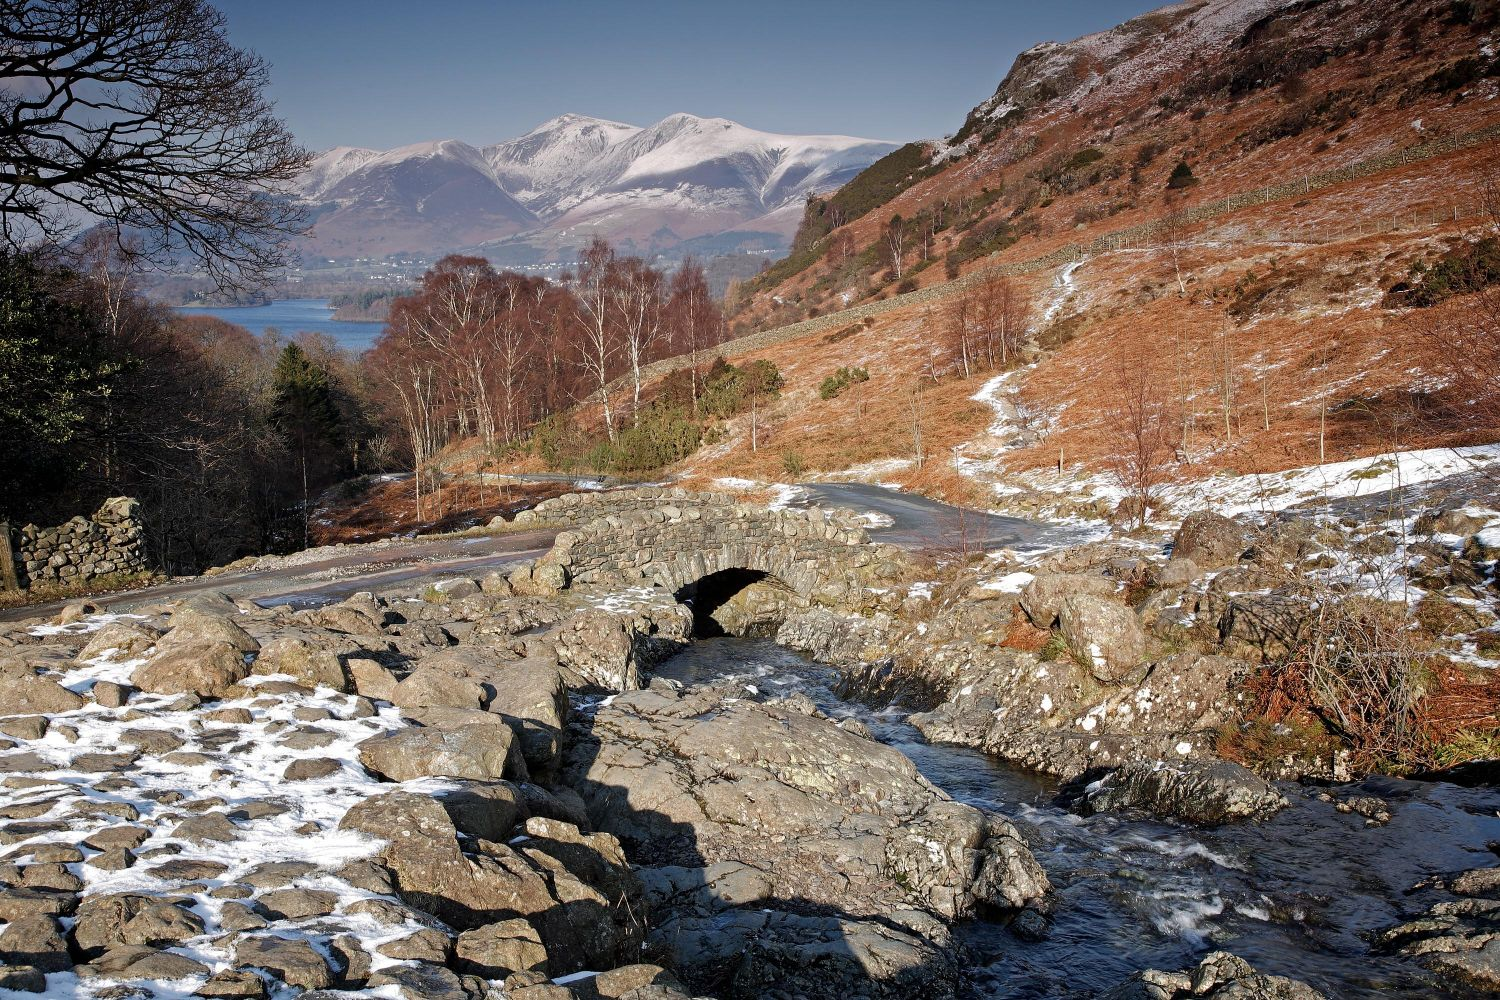 Melting snow at Ashness Bridge near Derwentwater